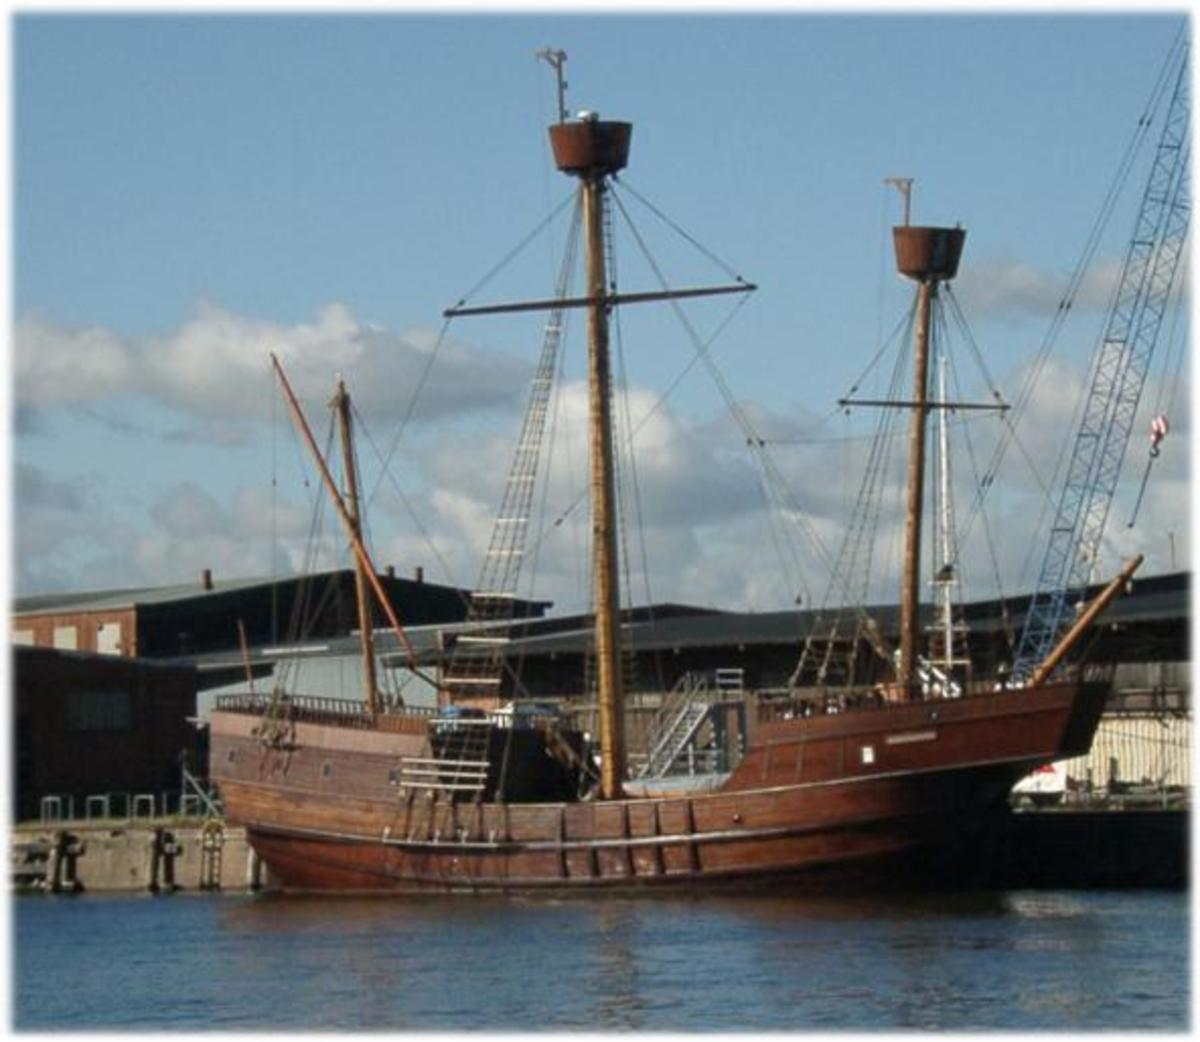 Did Templar treasure sail away on a similar vessel to this?